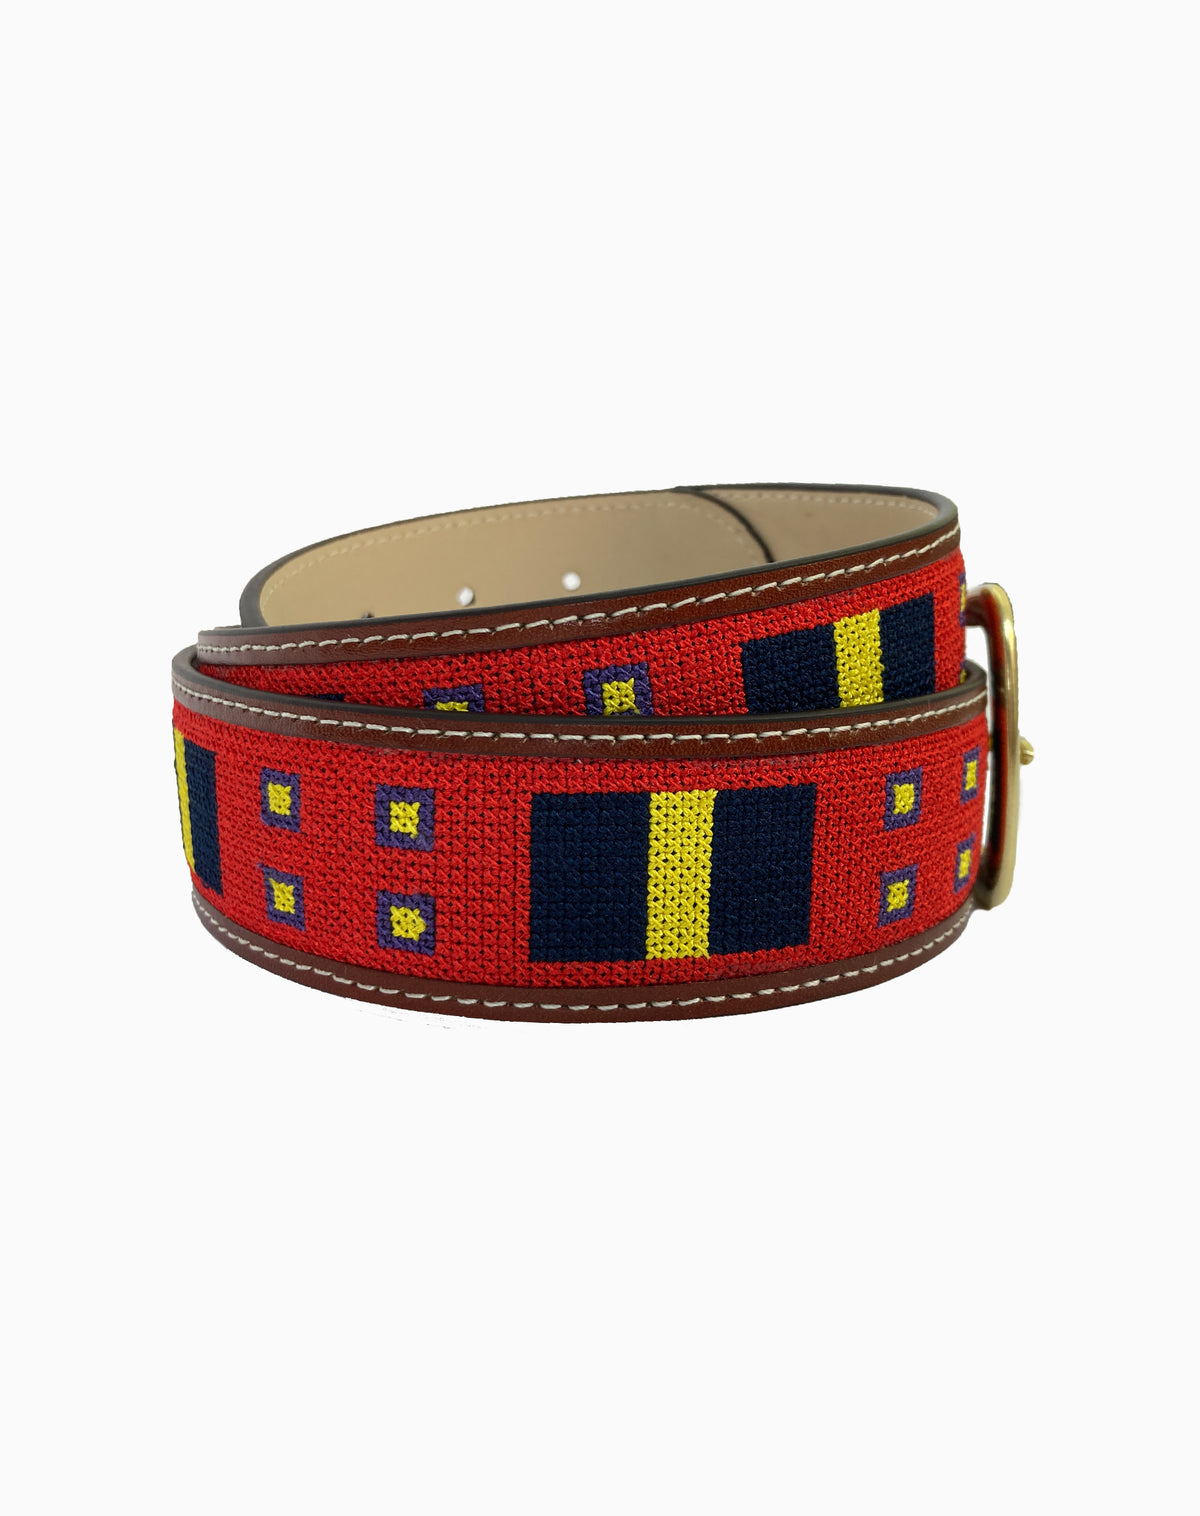 Embroidered Belt in Geometric Print